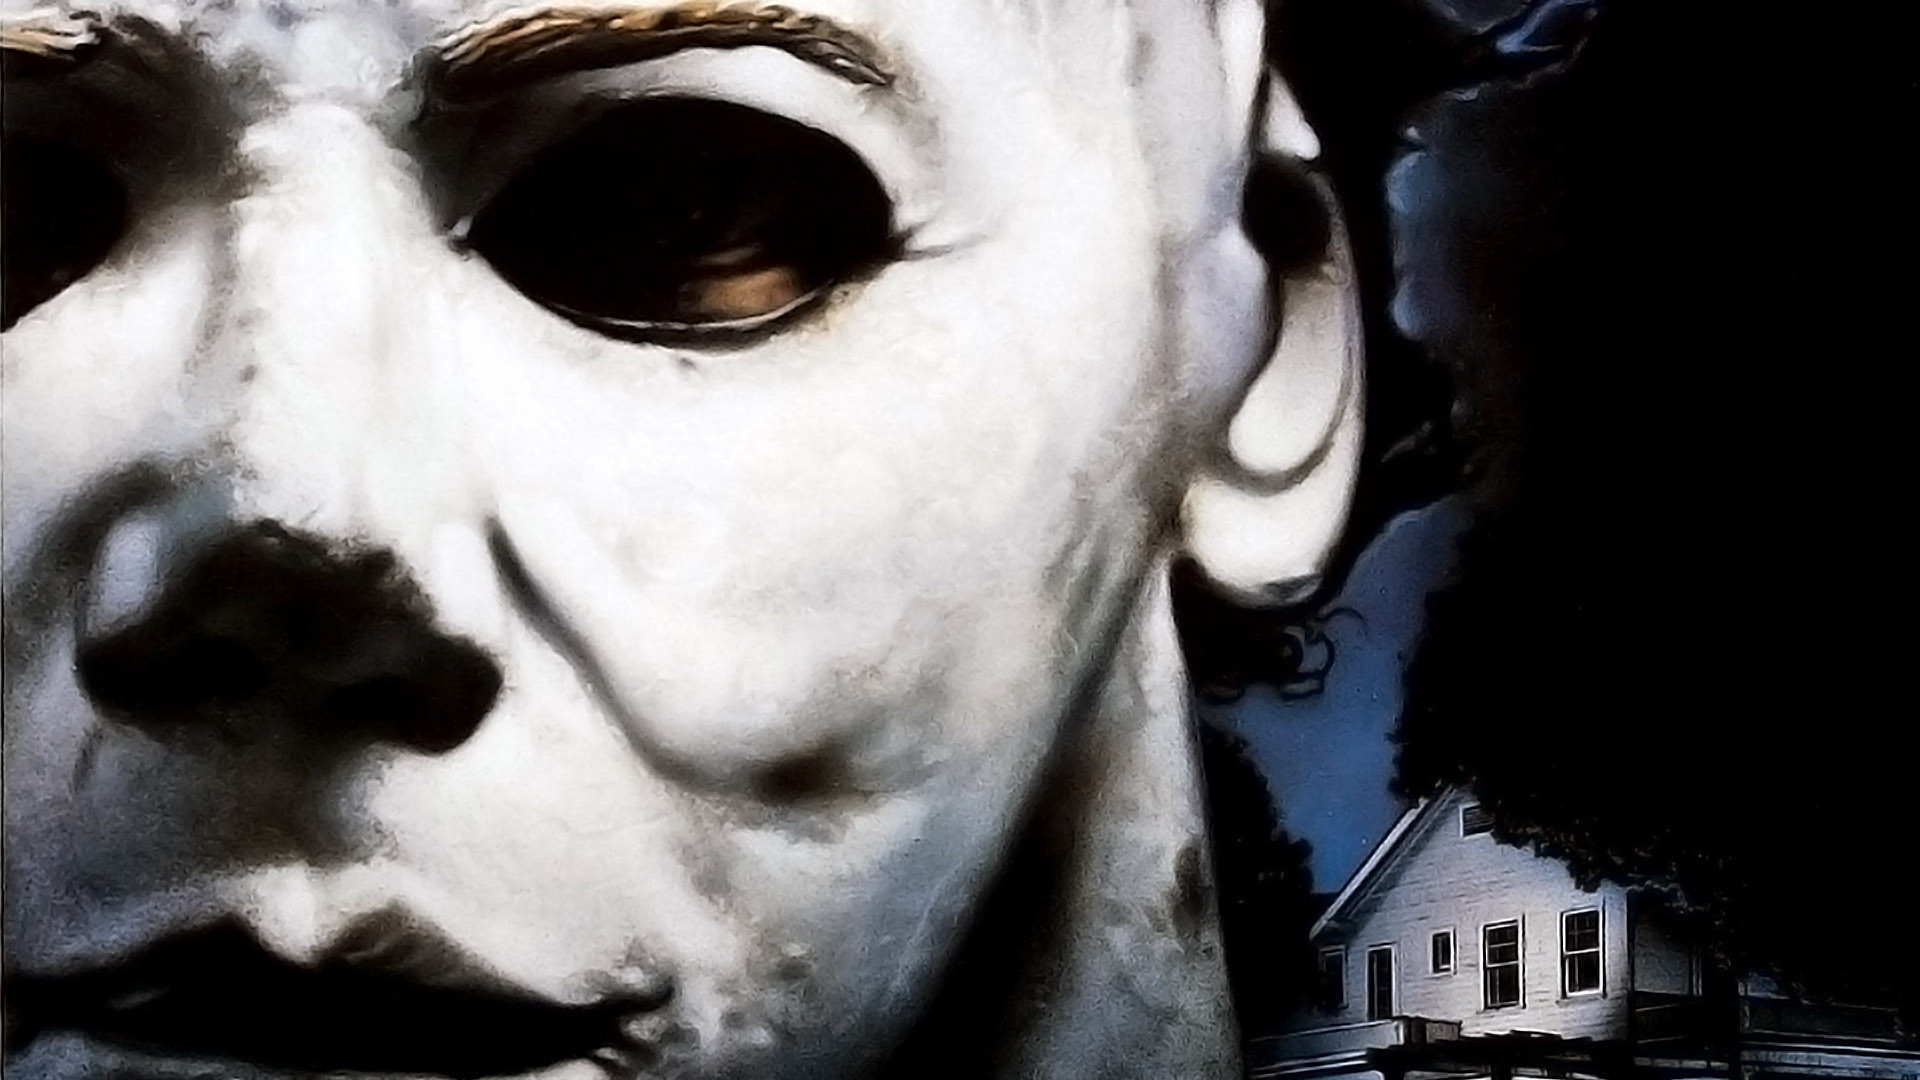 1920x1080 HalloweenThe Return of Michael Myers Movie Wallpapers.